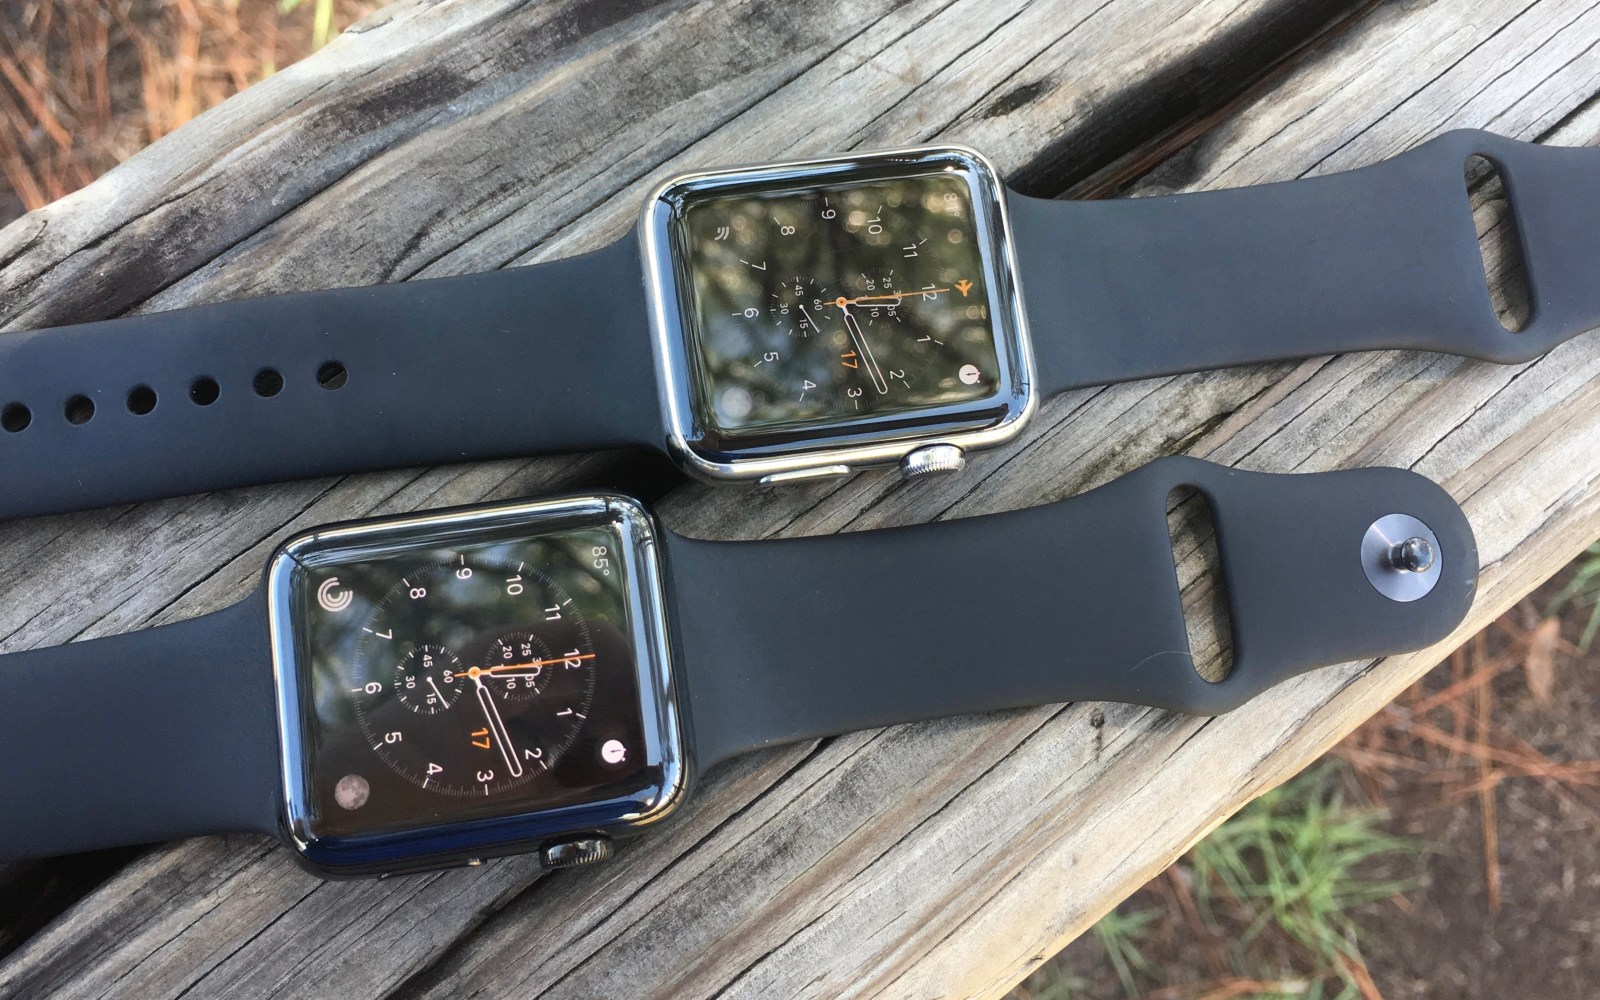 Report: New Apple Watch Series 3 switching to glass-film touch display, shipping later this year